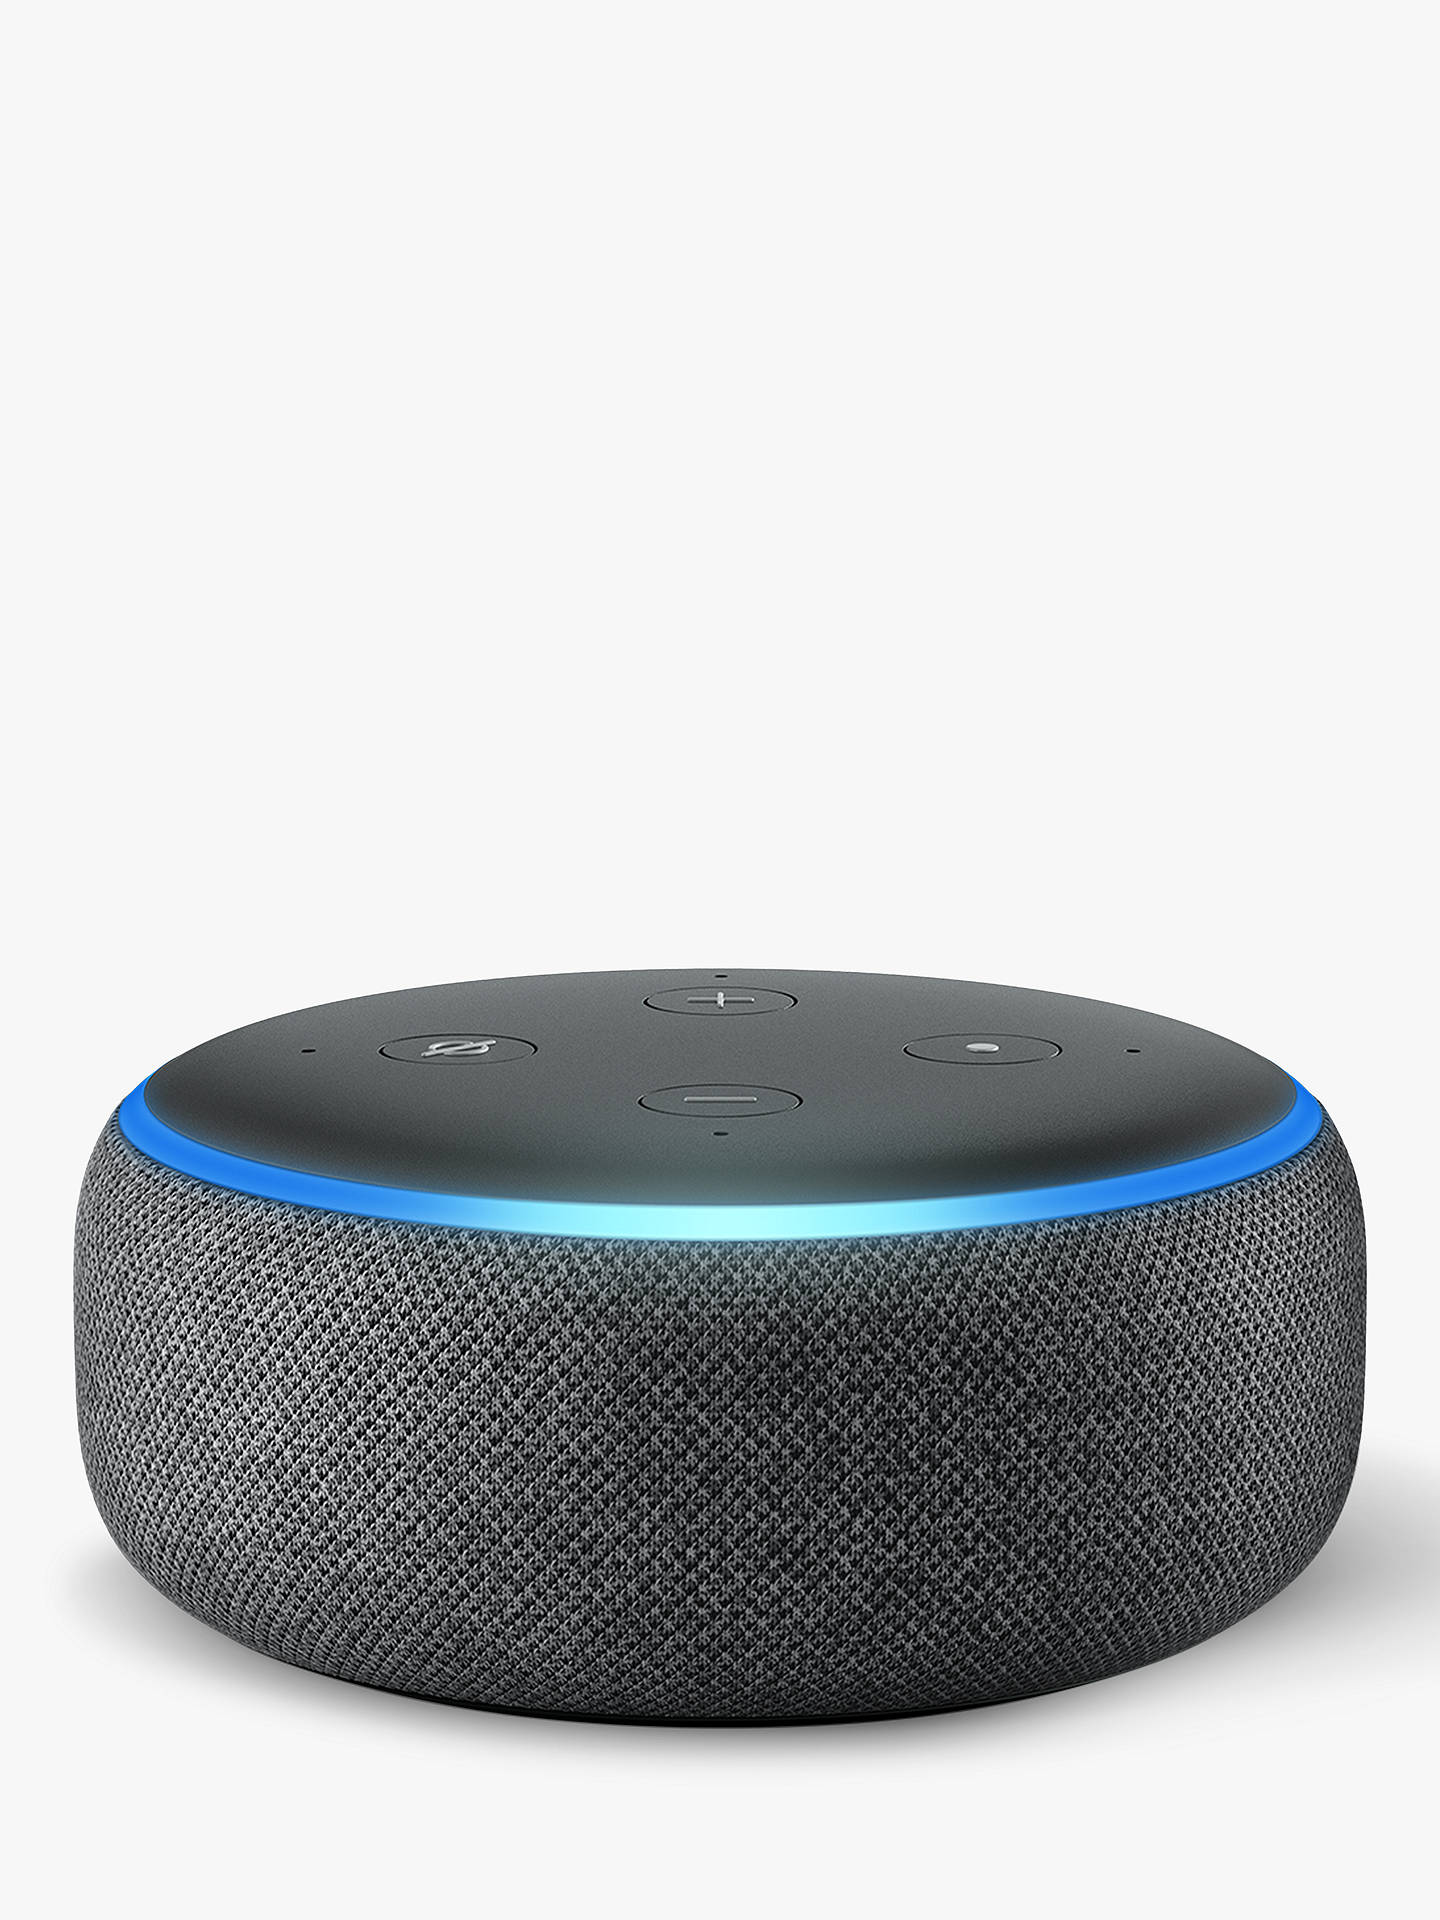 Buy Amazon Echo Dot Smart Device with Alexa Voice Recognition & Control, 3rd Generation, Charcoal Online at johnlewis.com